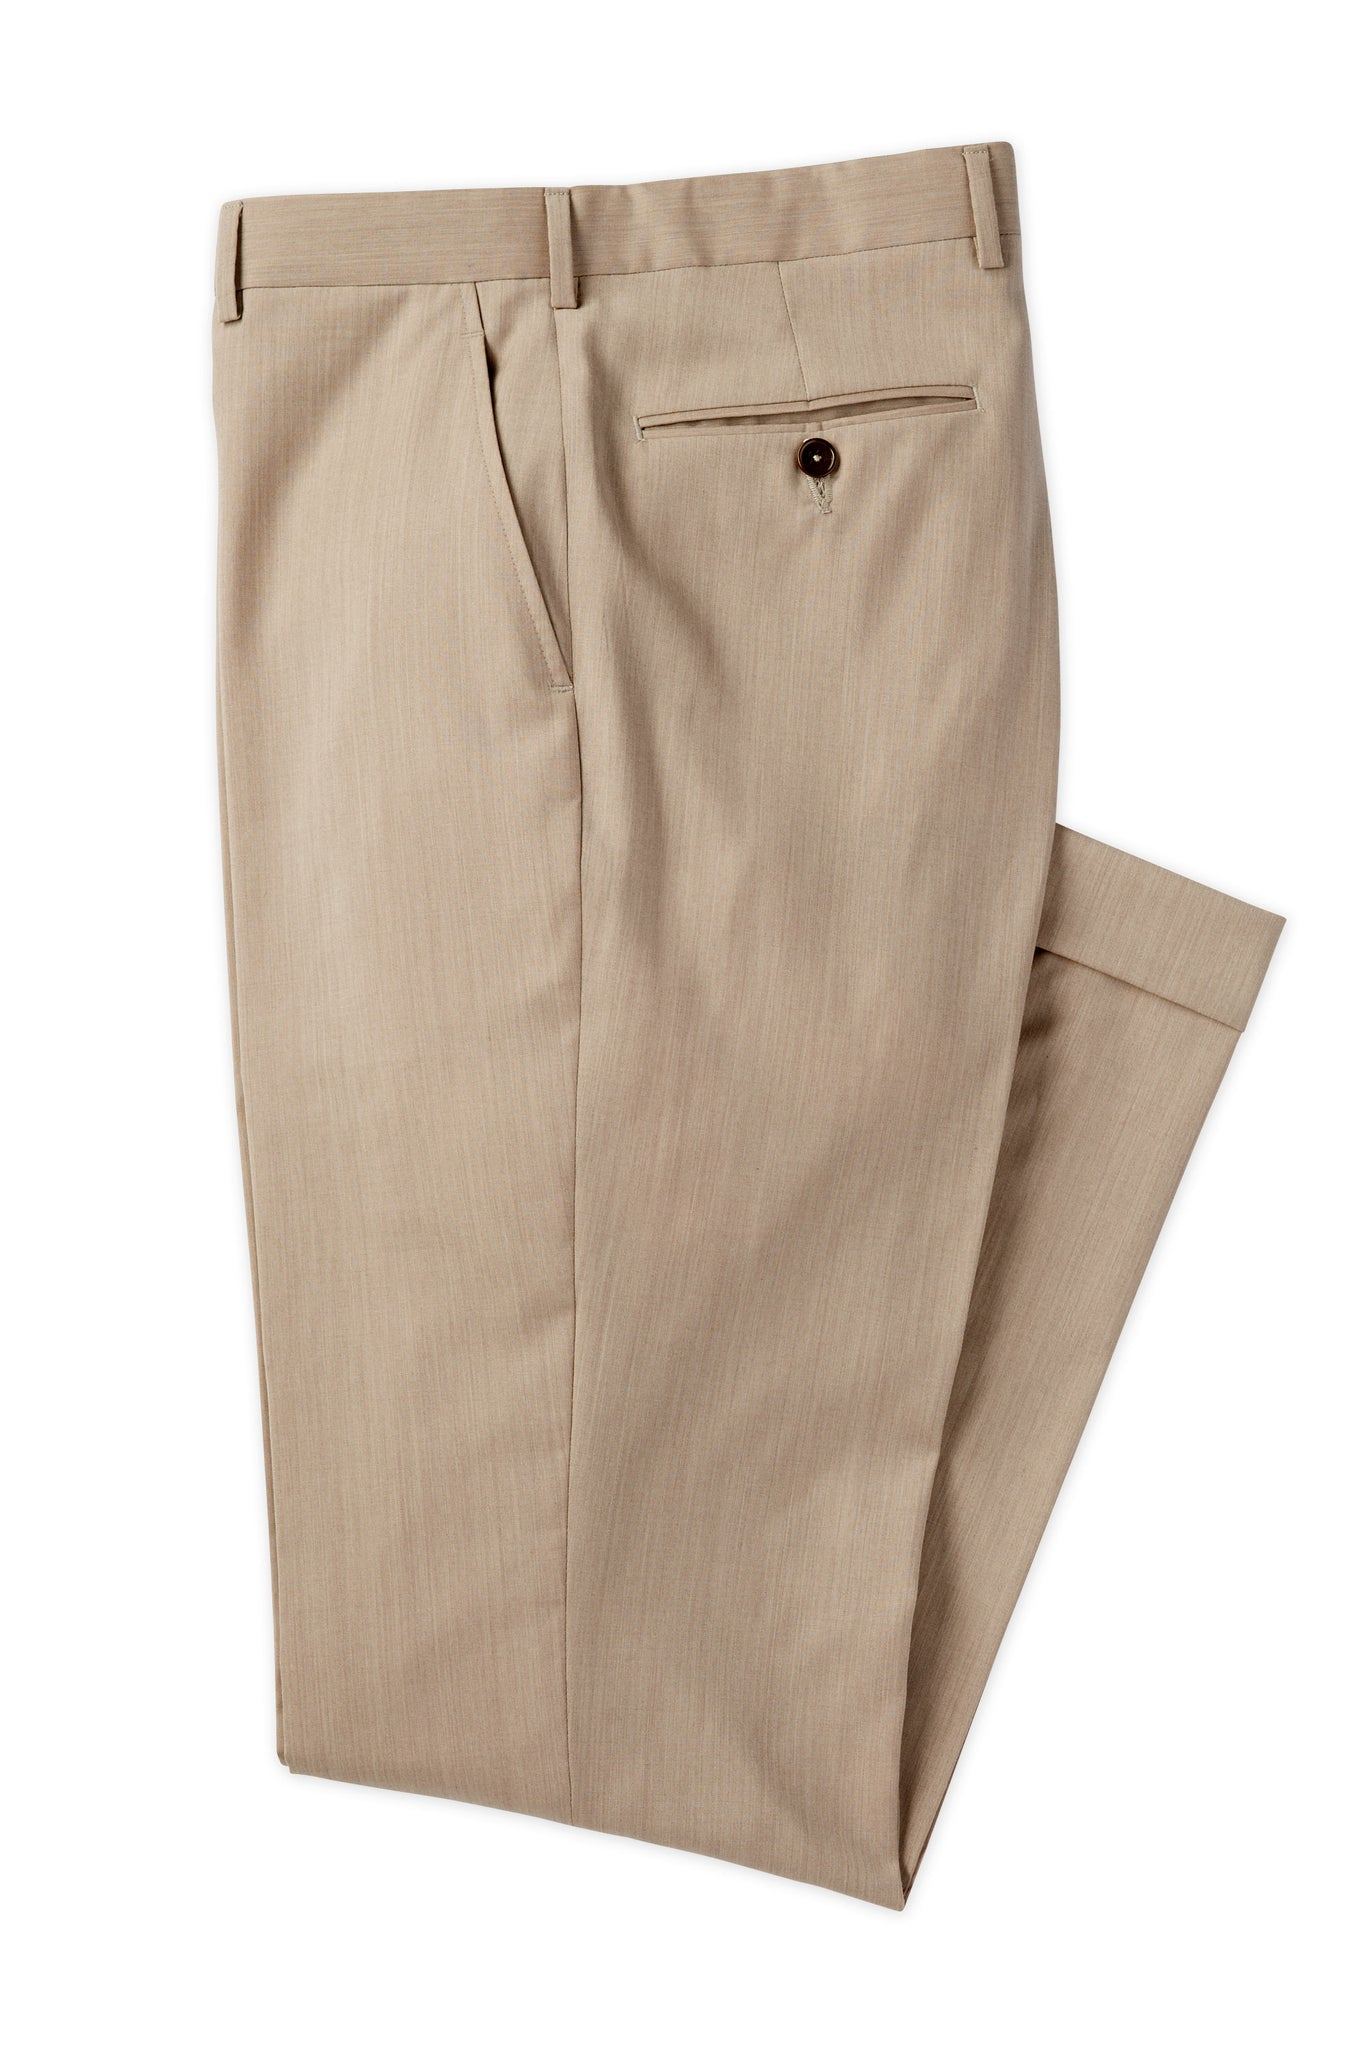 Modern Fit Tan Super 120's Wool Flat Front Dress Pant -  Hardwick.com